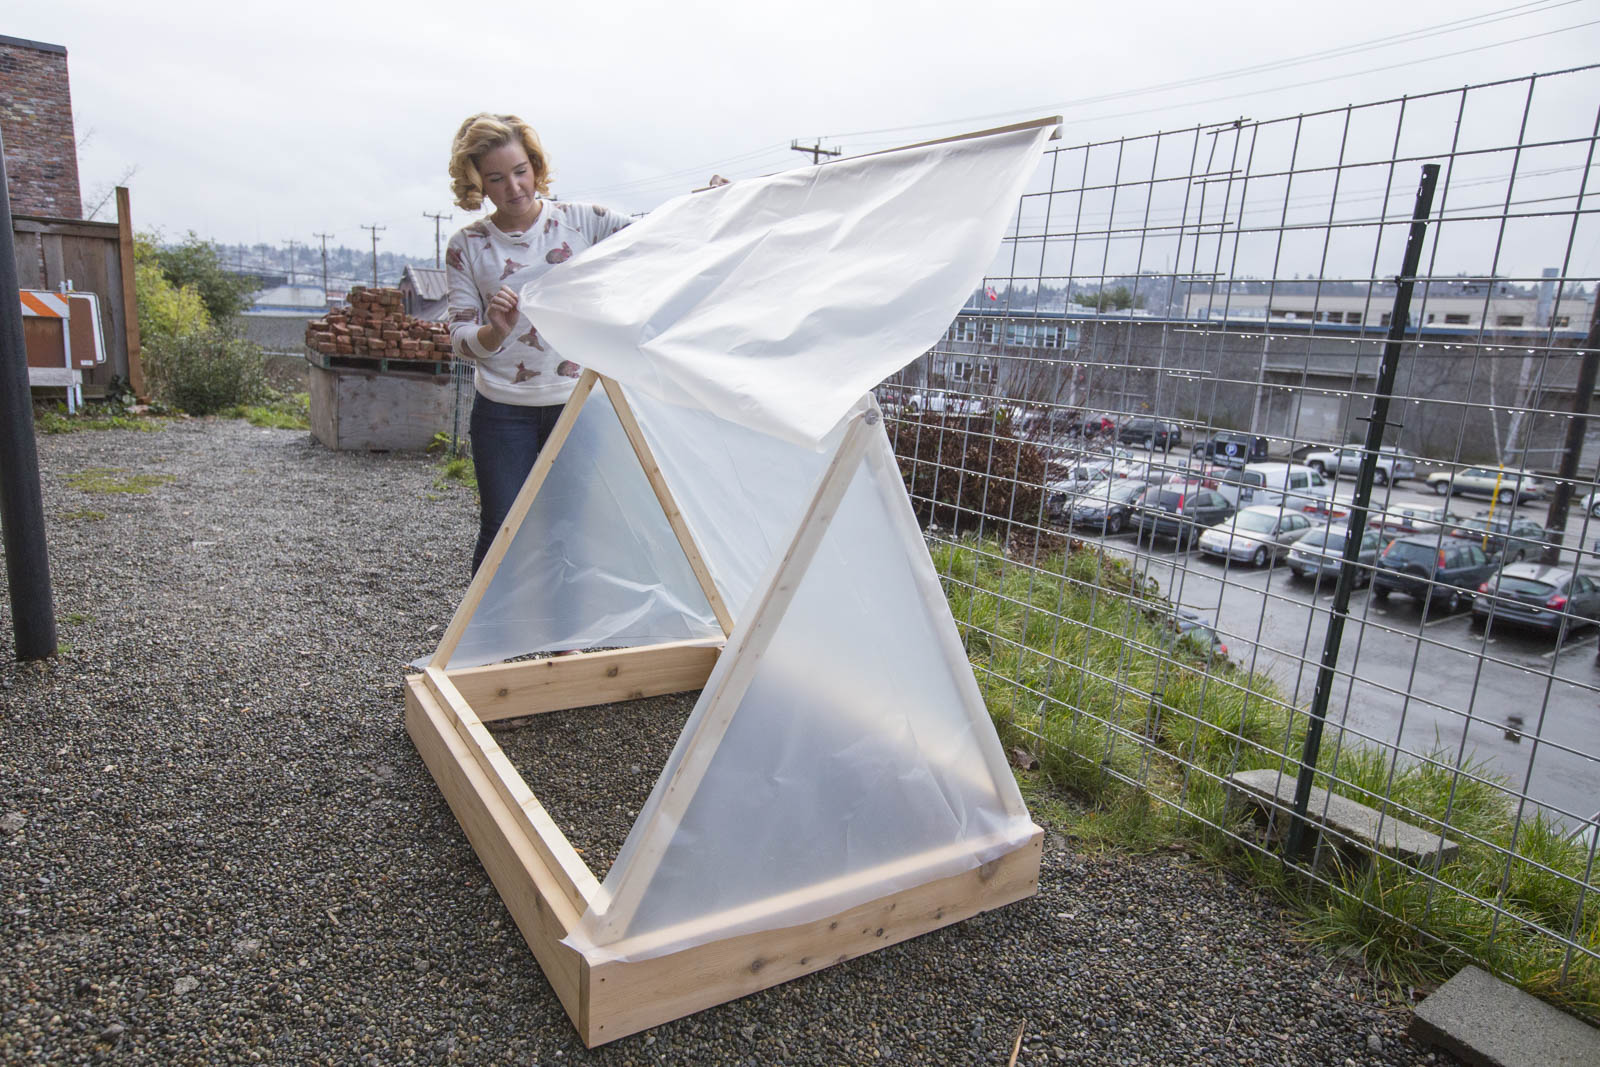 how to make a cold frame tent